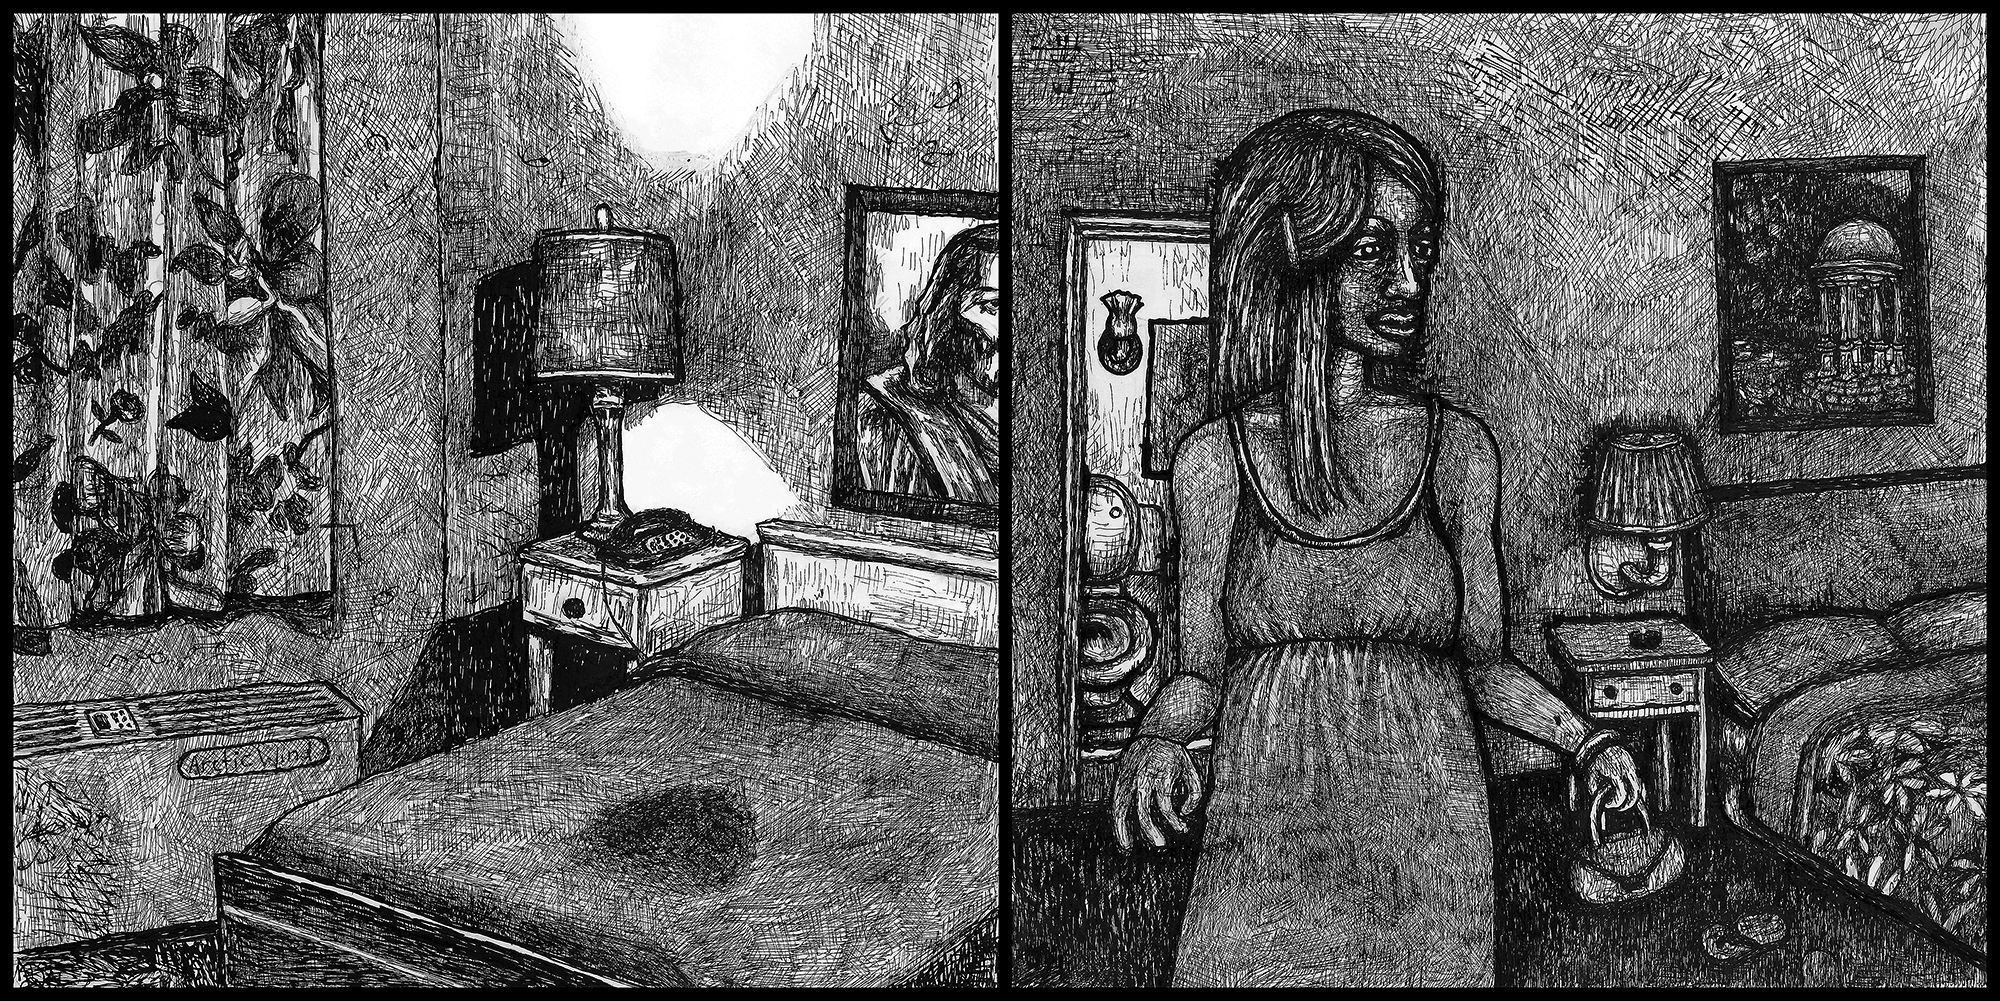 """Stain"" & ""Girl in Motel Room"" by Emily Hochman, 2009, ink on paper"